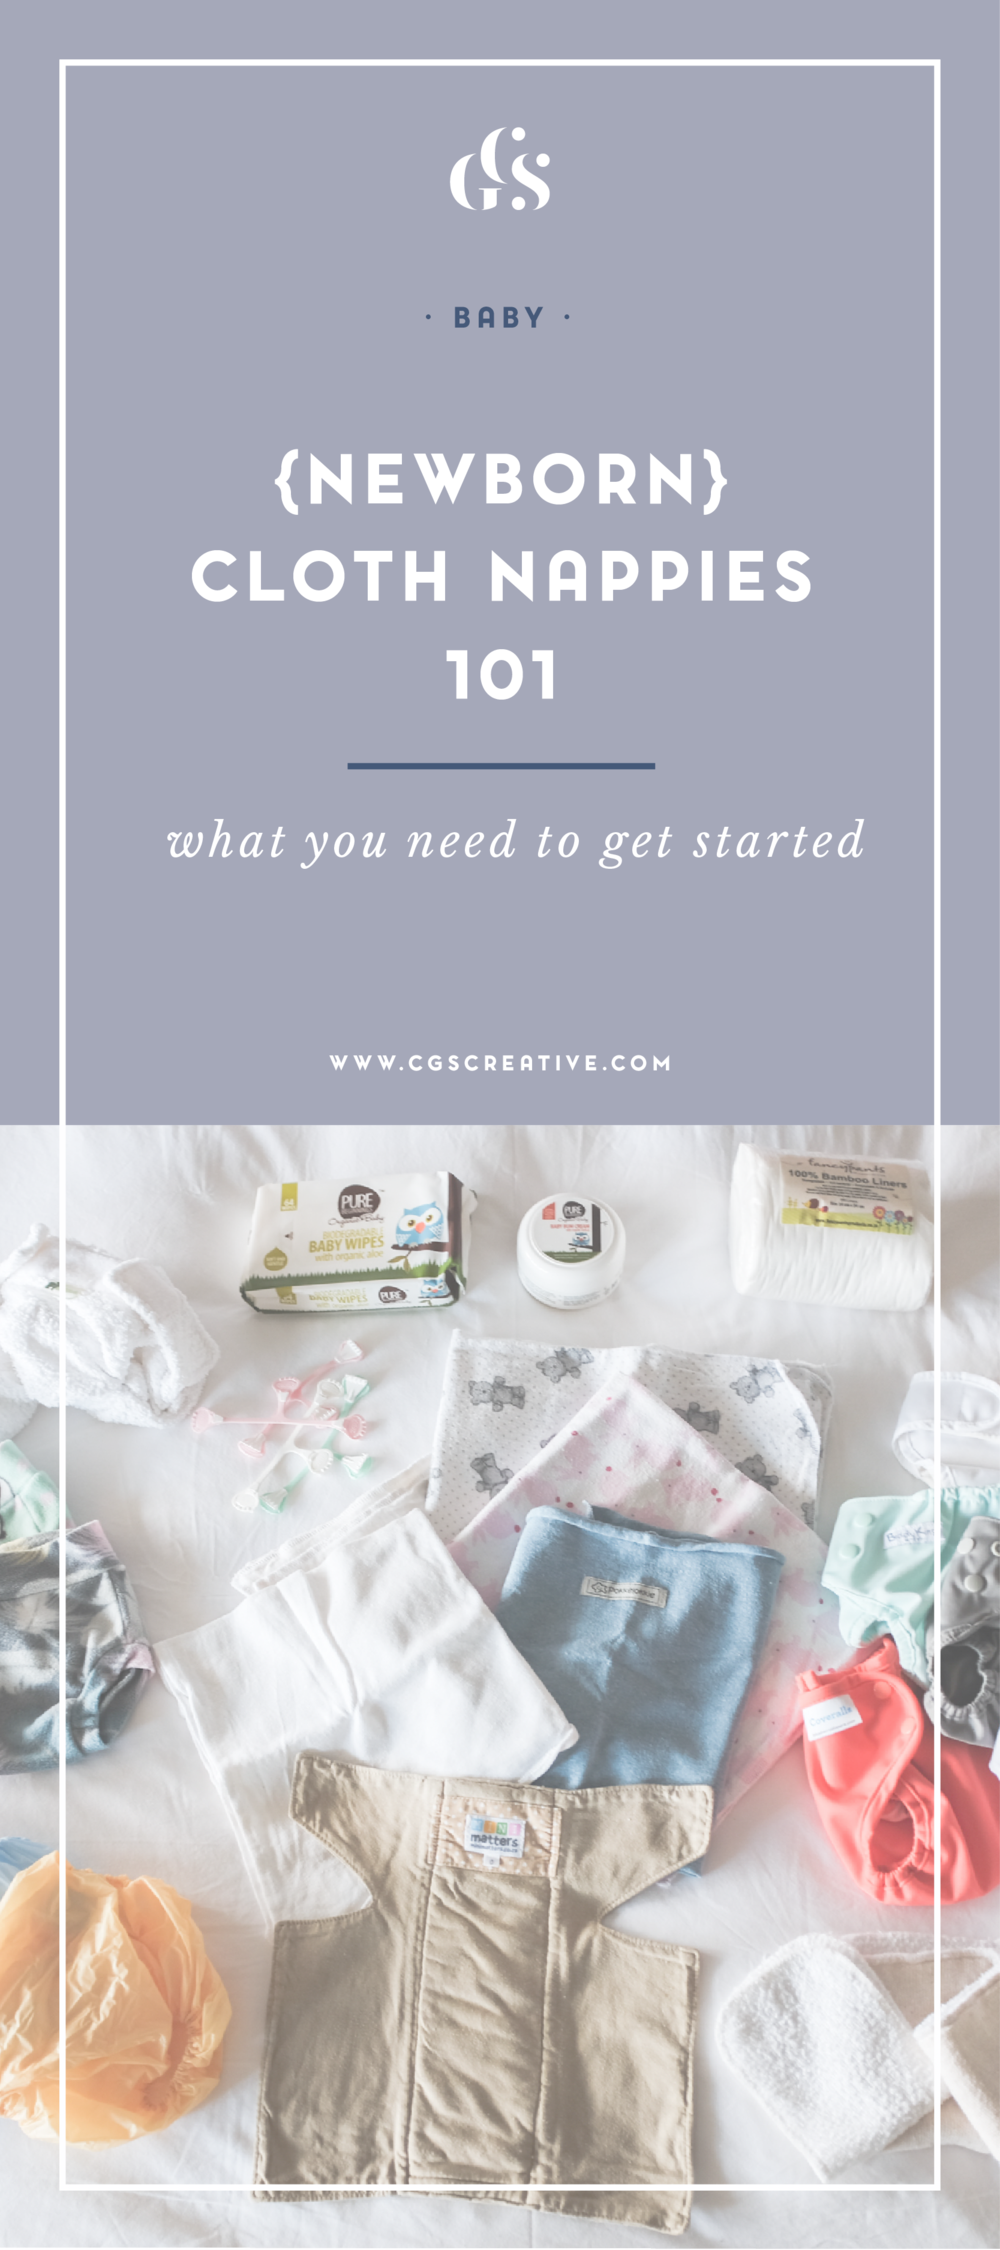 Cloth Nappies for Newborn what you need to get started_Artboard 4.png